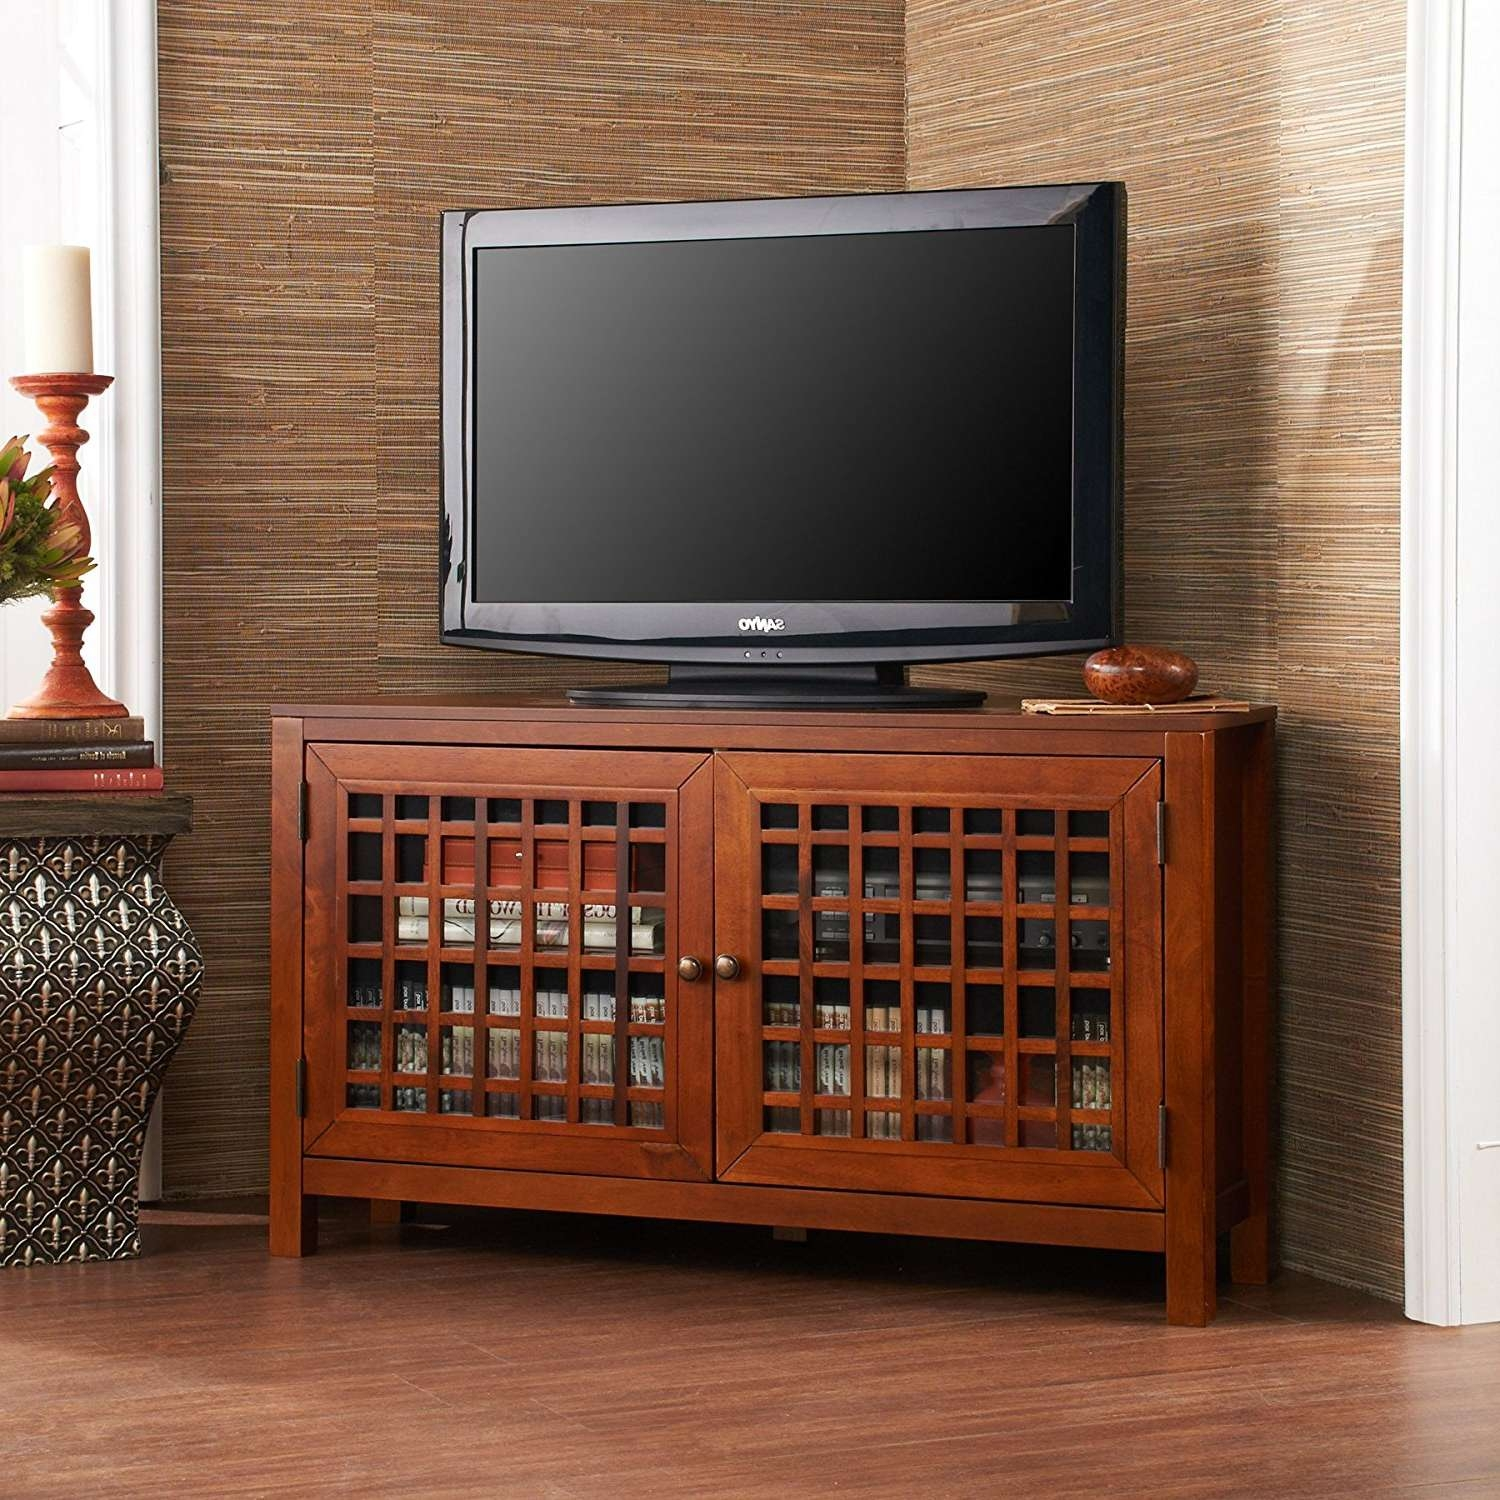 Tremendous 24 Inch Corner Tv Stands Tags : 24 Inch Corner Tv With 24 Inch Led Tv Stands (View 11 of 15)